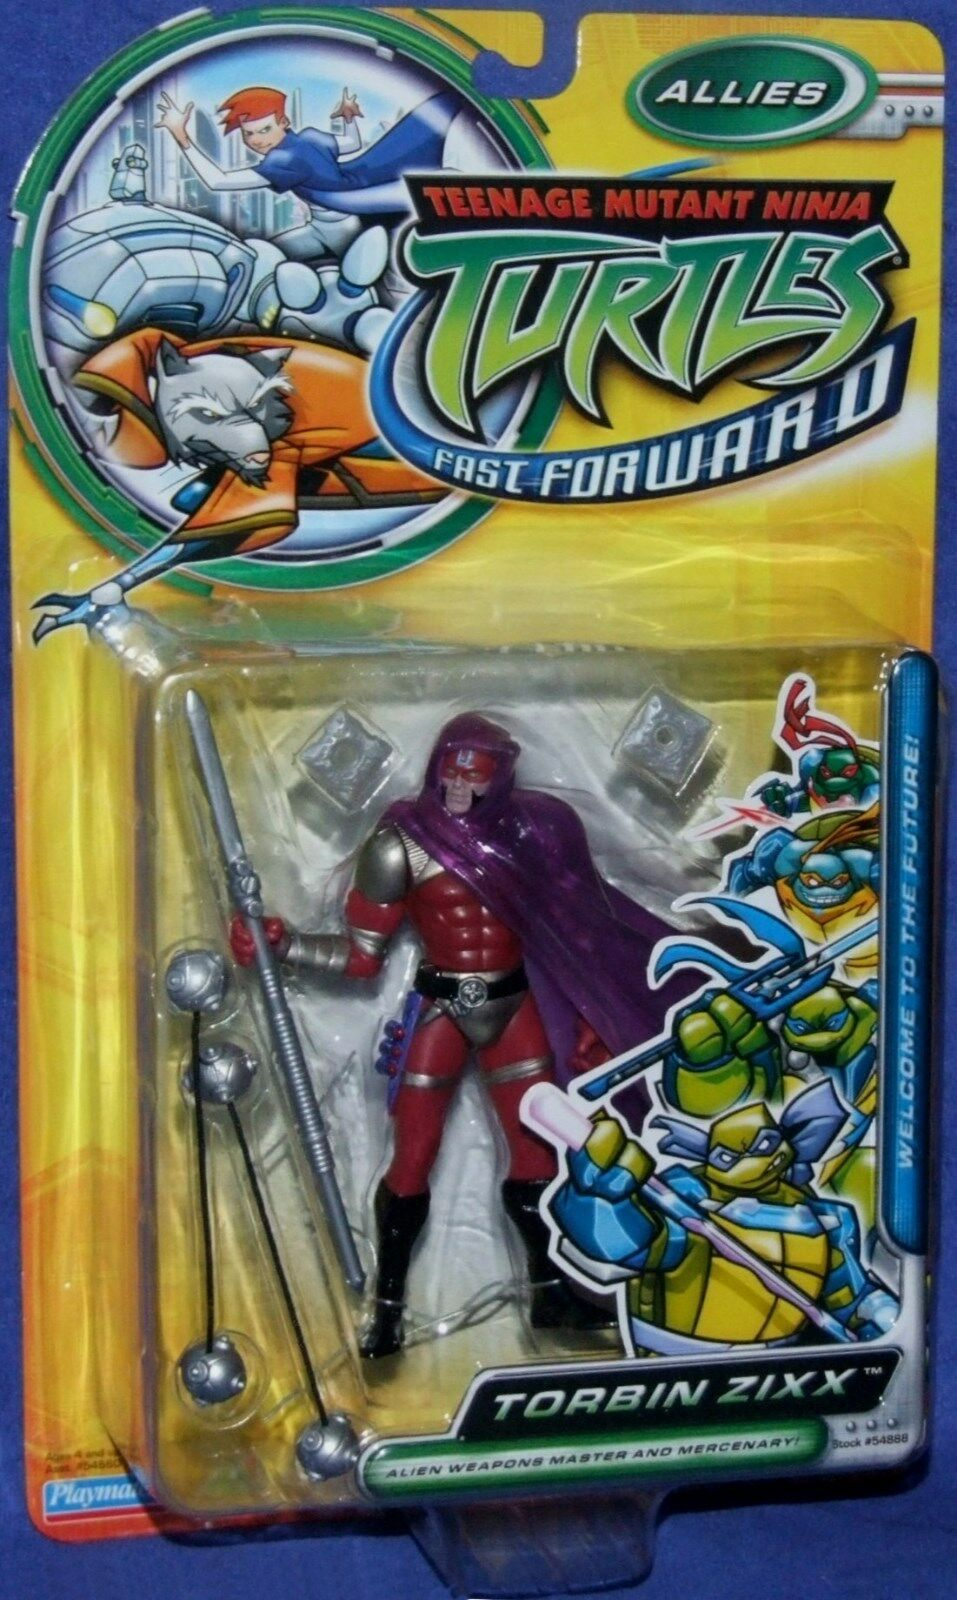 Teenage Mutant Ninja Turtles 5  Fast Forward Torbin Zixx NEW Factory Sealed 2006